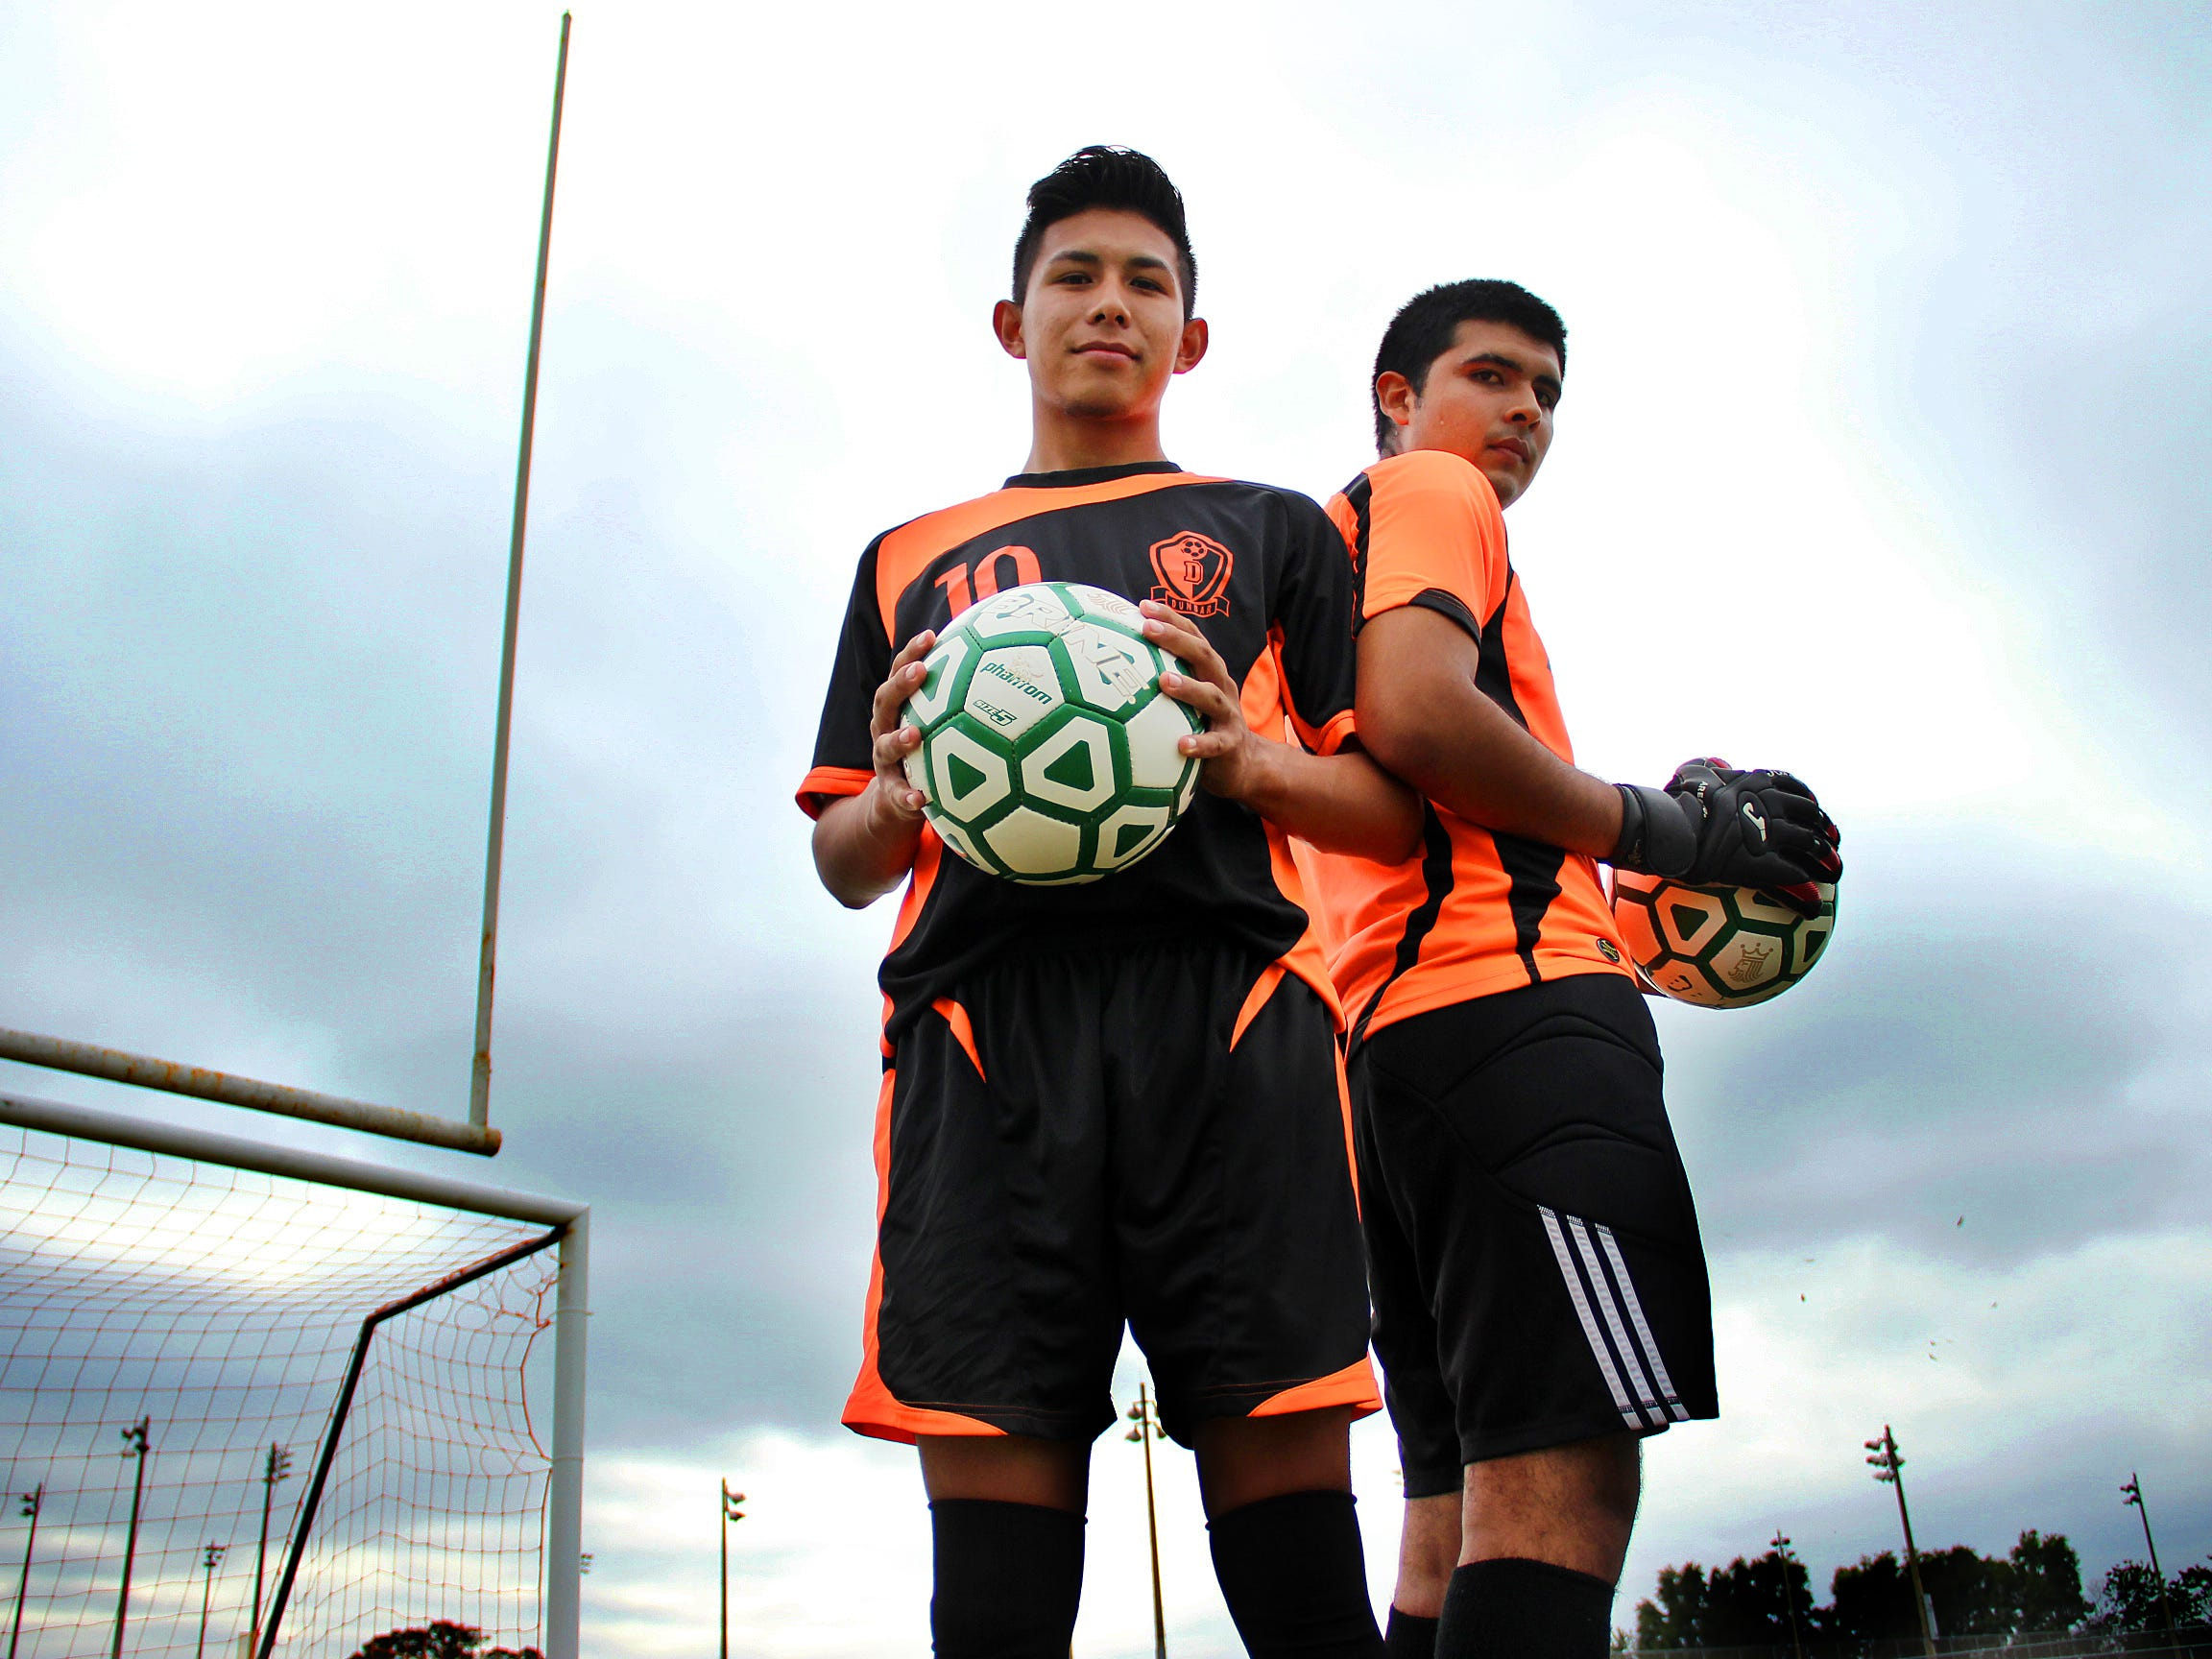 Seniors Jose Valencia (left) and Octavio Abella (right) have helped change the culture of the Dunbar boys soccer program after a 2011-12 season where the Tigers went 0-18